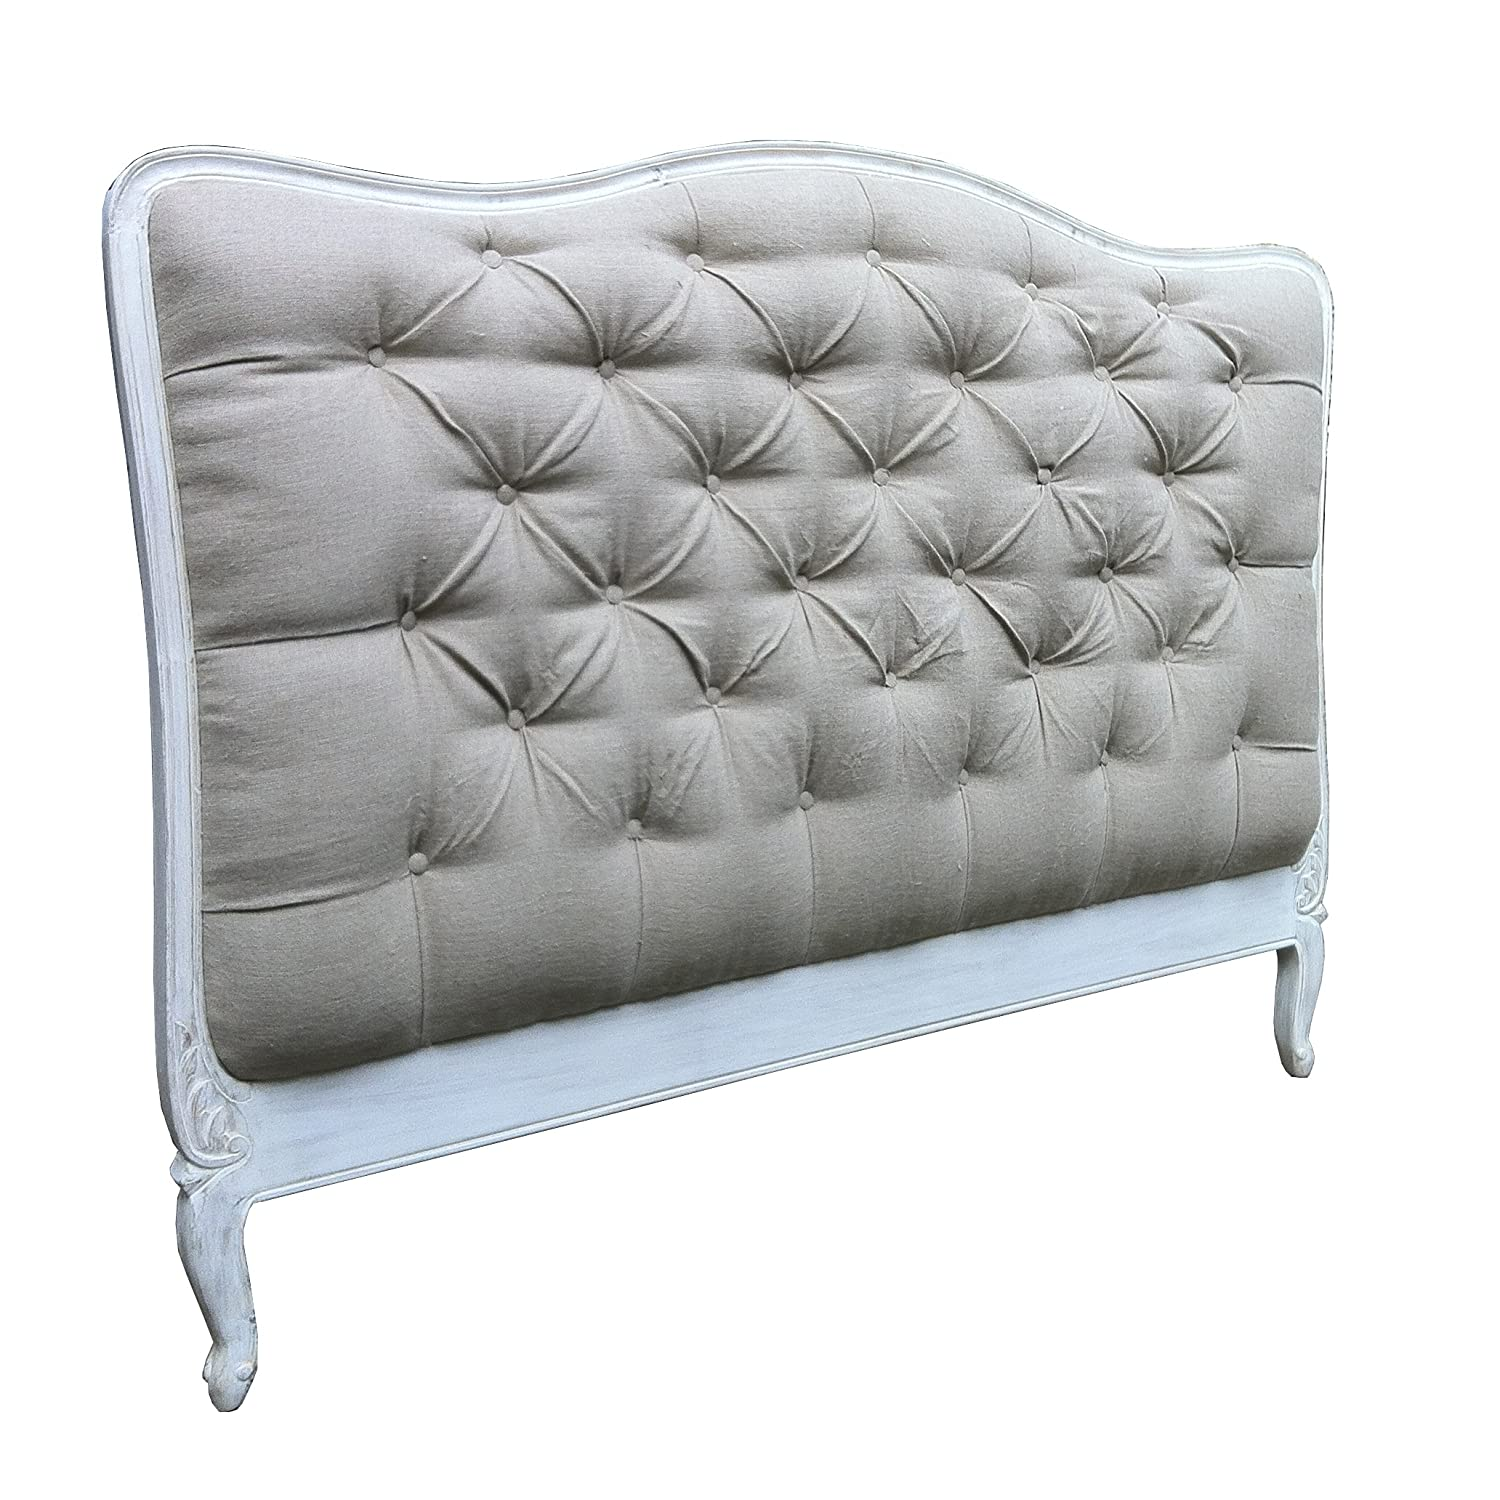 white size to queen headboard desk king grey ideas victorian tufted upholstered silver velvet headboards buy full bedroom padded bed where executive metal gray bling